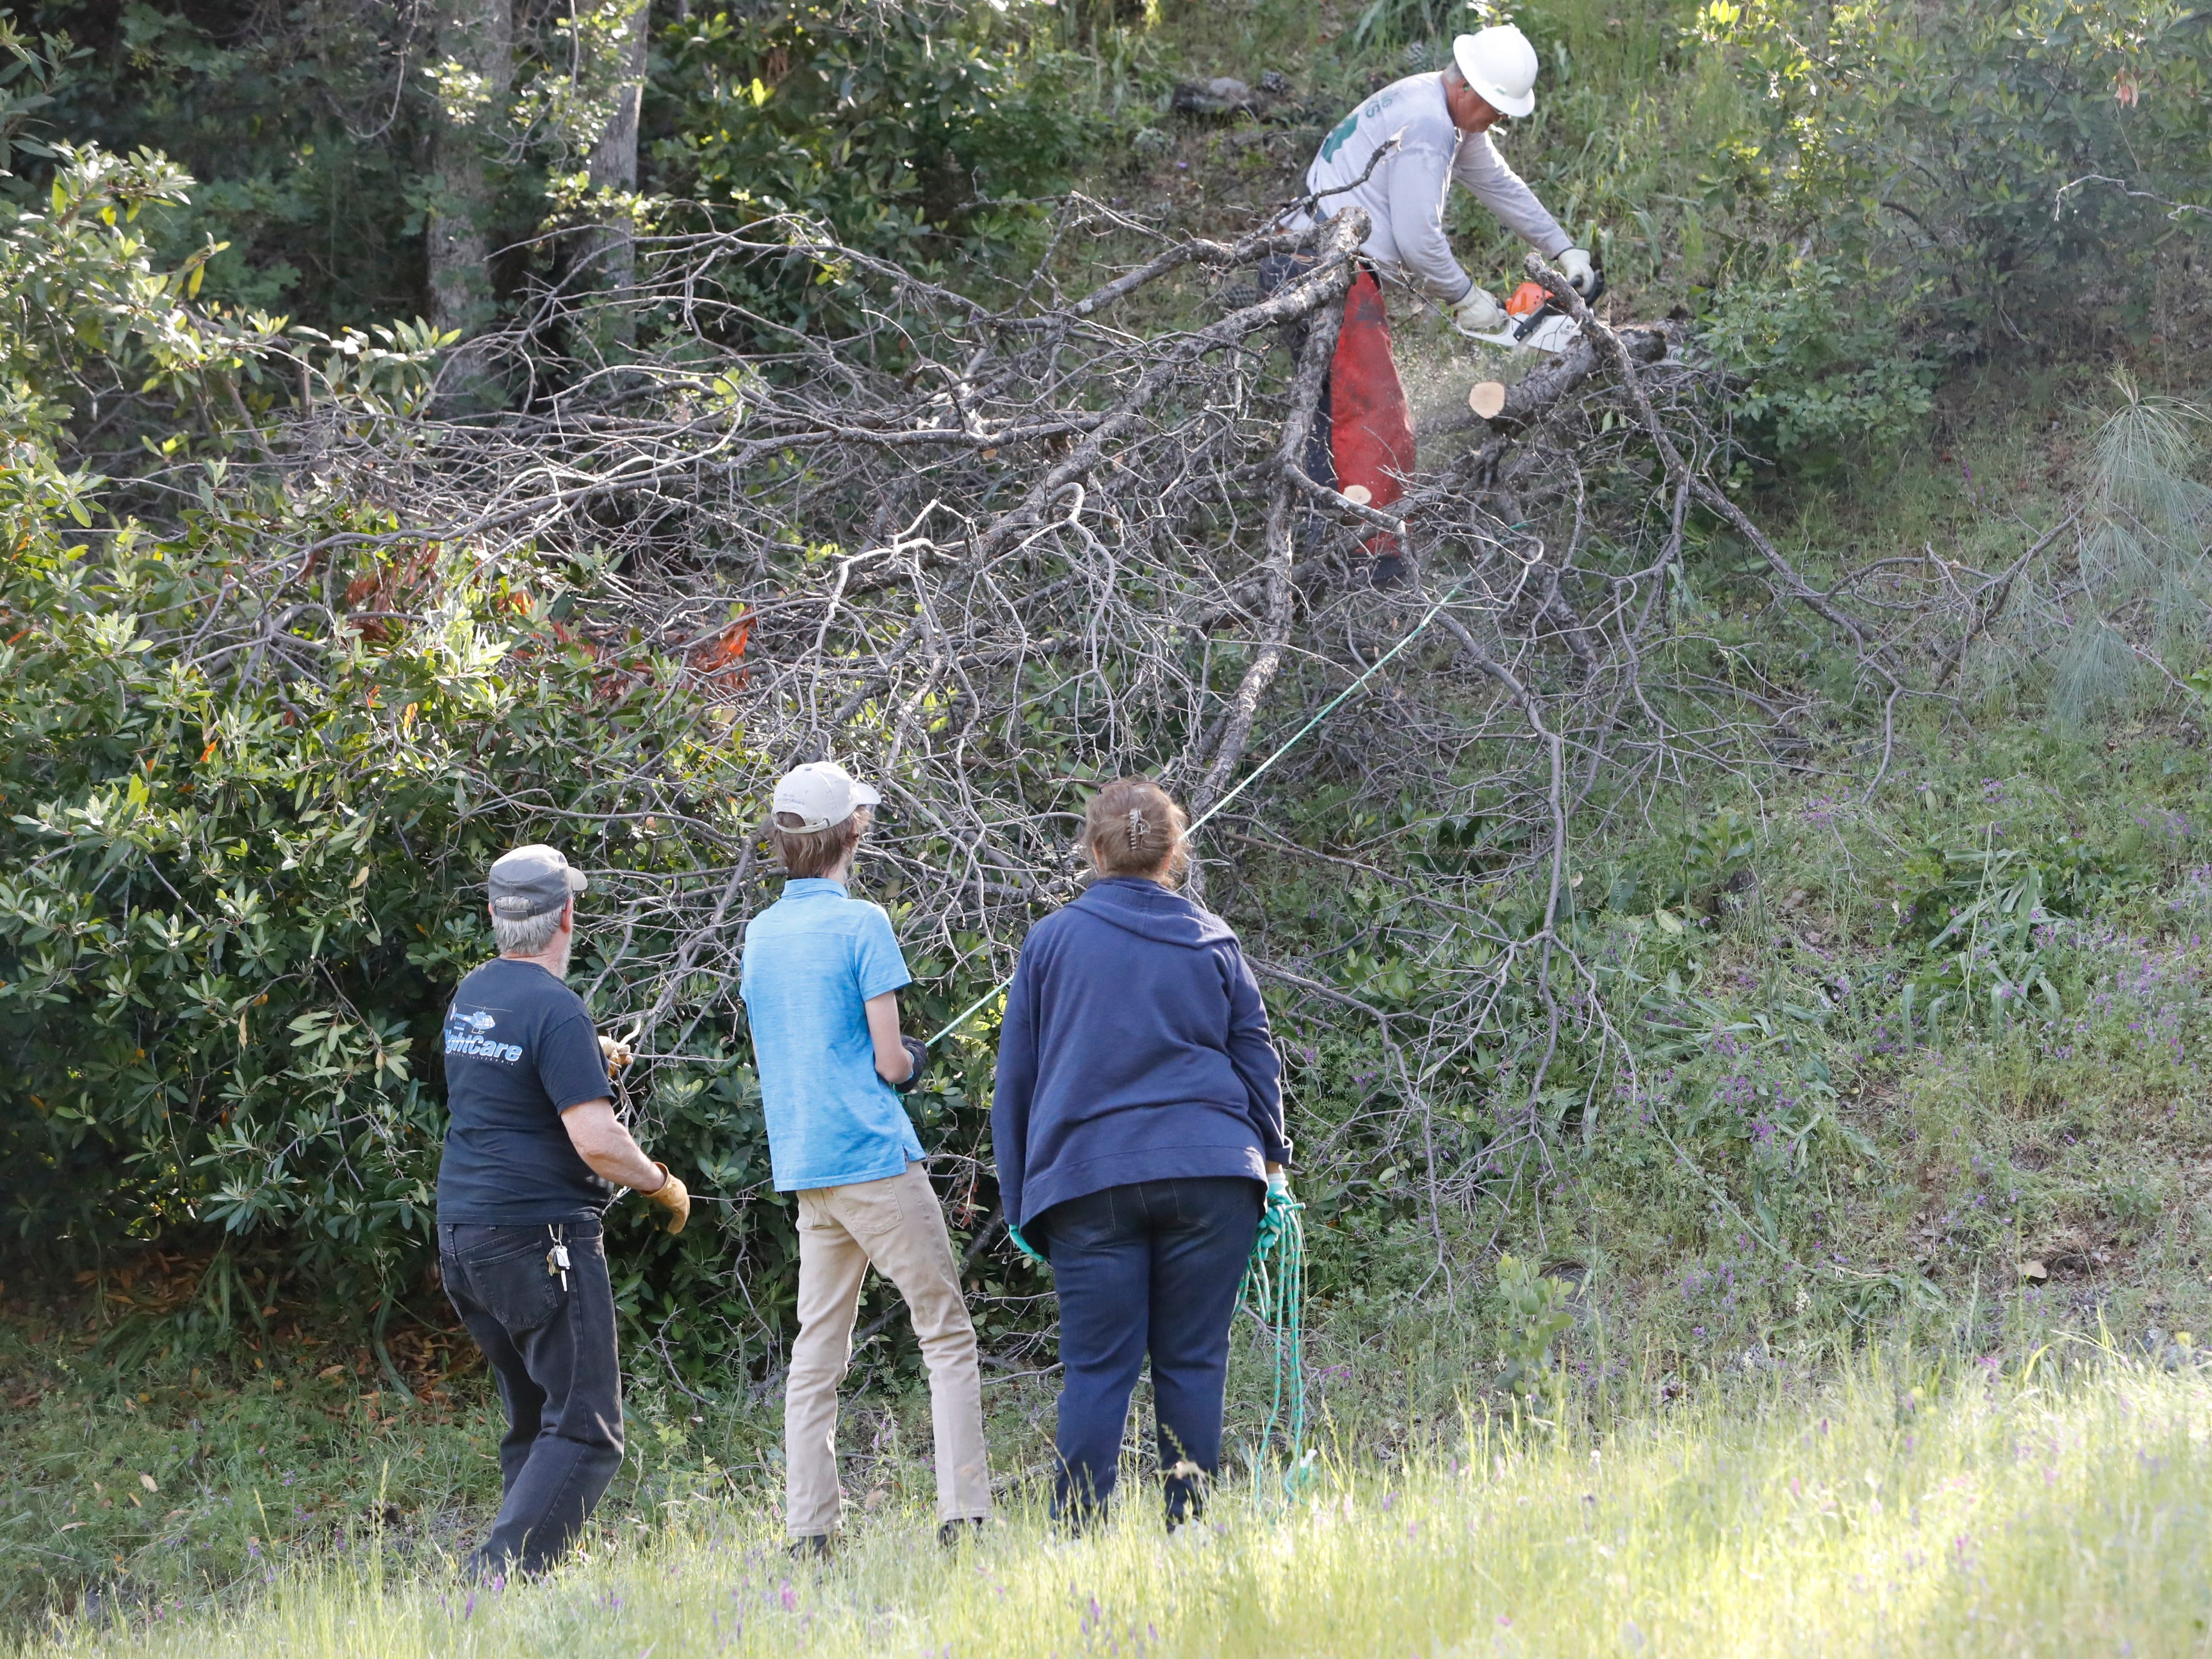 A city of Redding parks department employee saws a dead branch with help from citizen volunteers to create a defensible space from fire along Blazingwood Drive on Saturday, May 4, 2019.